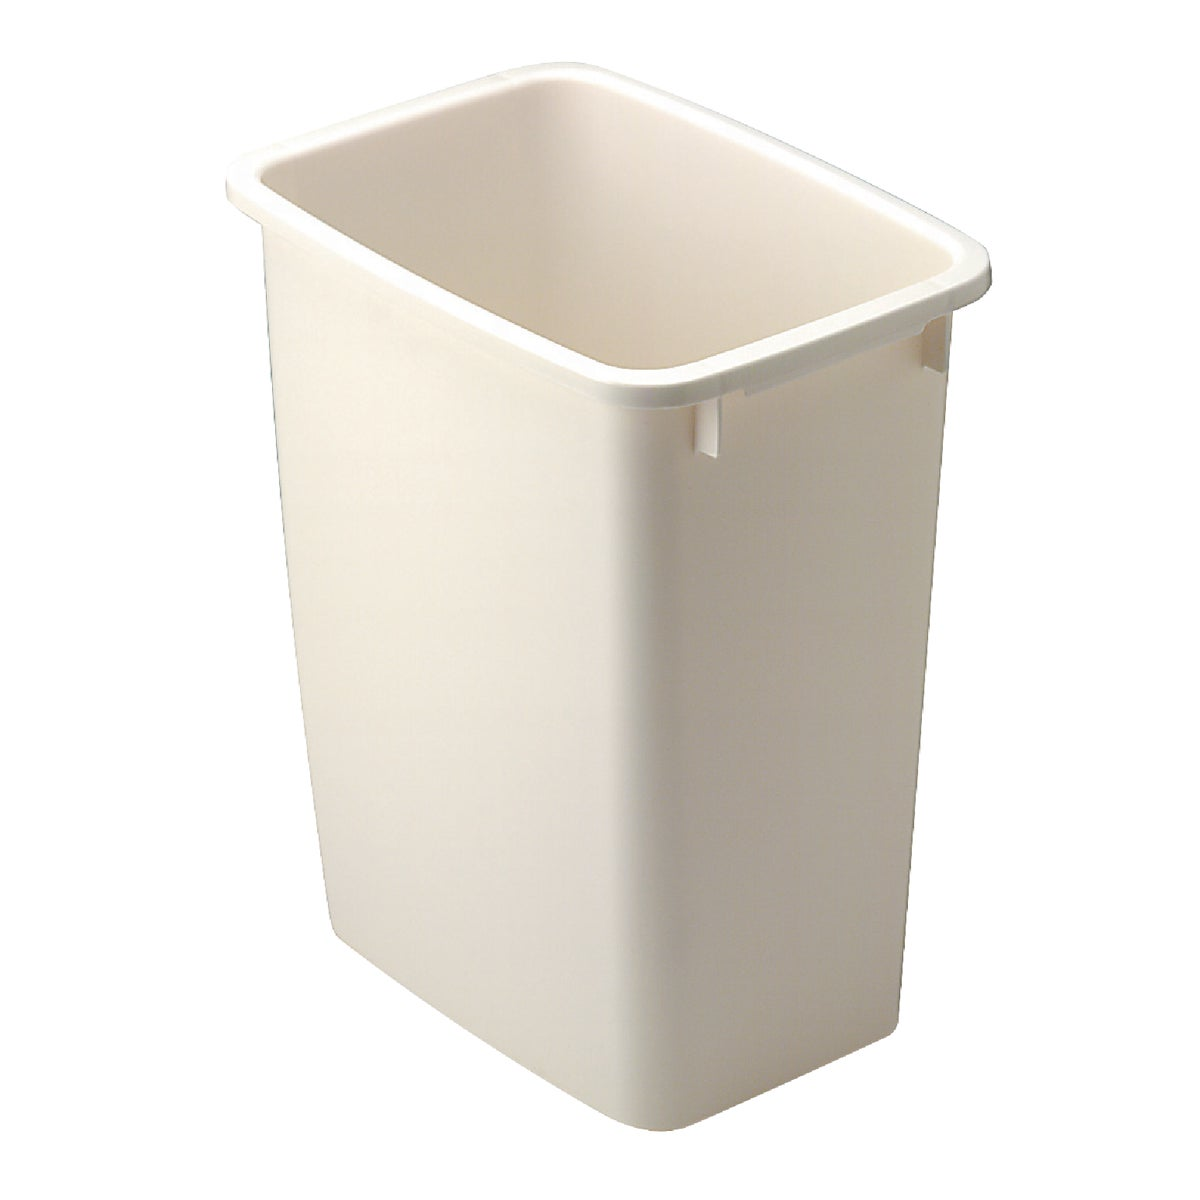 21QT BISQUE WASTEBASKET - 280500-BISQU by Rubbermaid Home